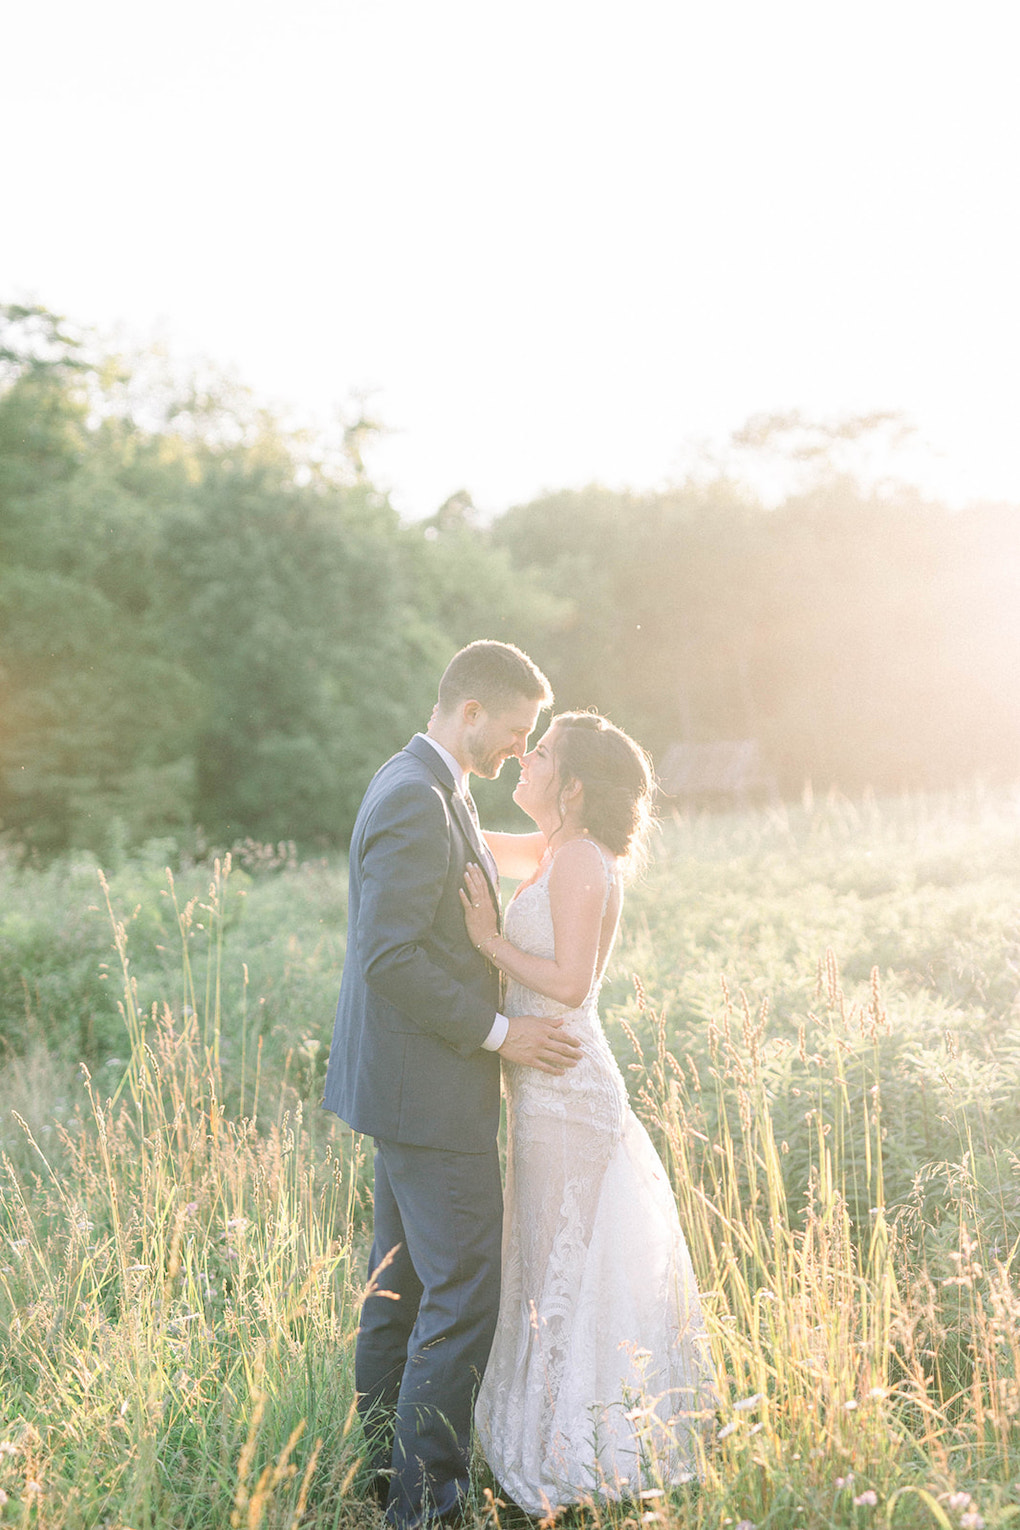 Sunset wedding photos:Pittsburgh Botanic Garden wedding planned by Exhale Events. See more wedding inspiration at exhale-events.com!